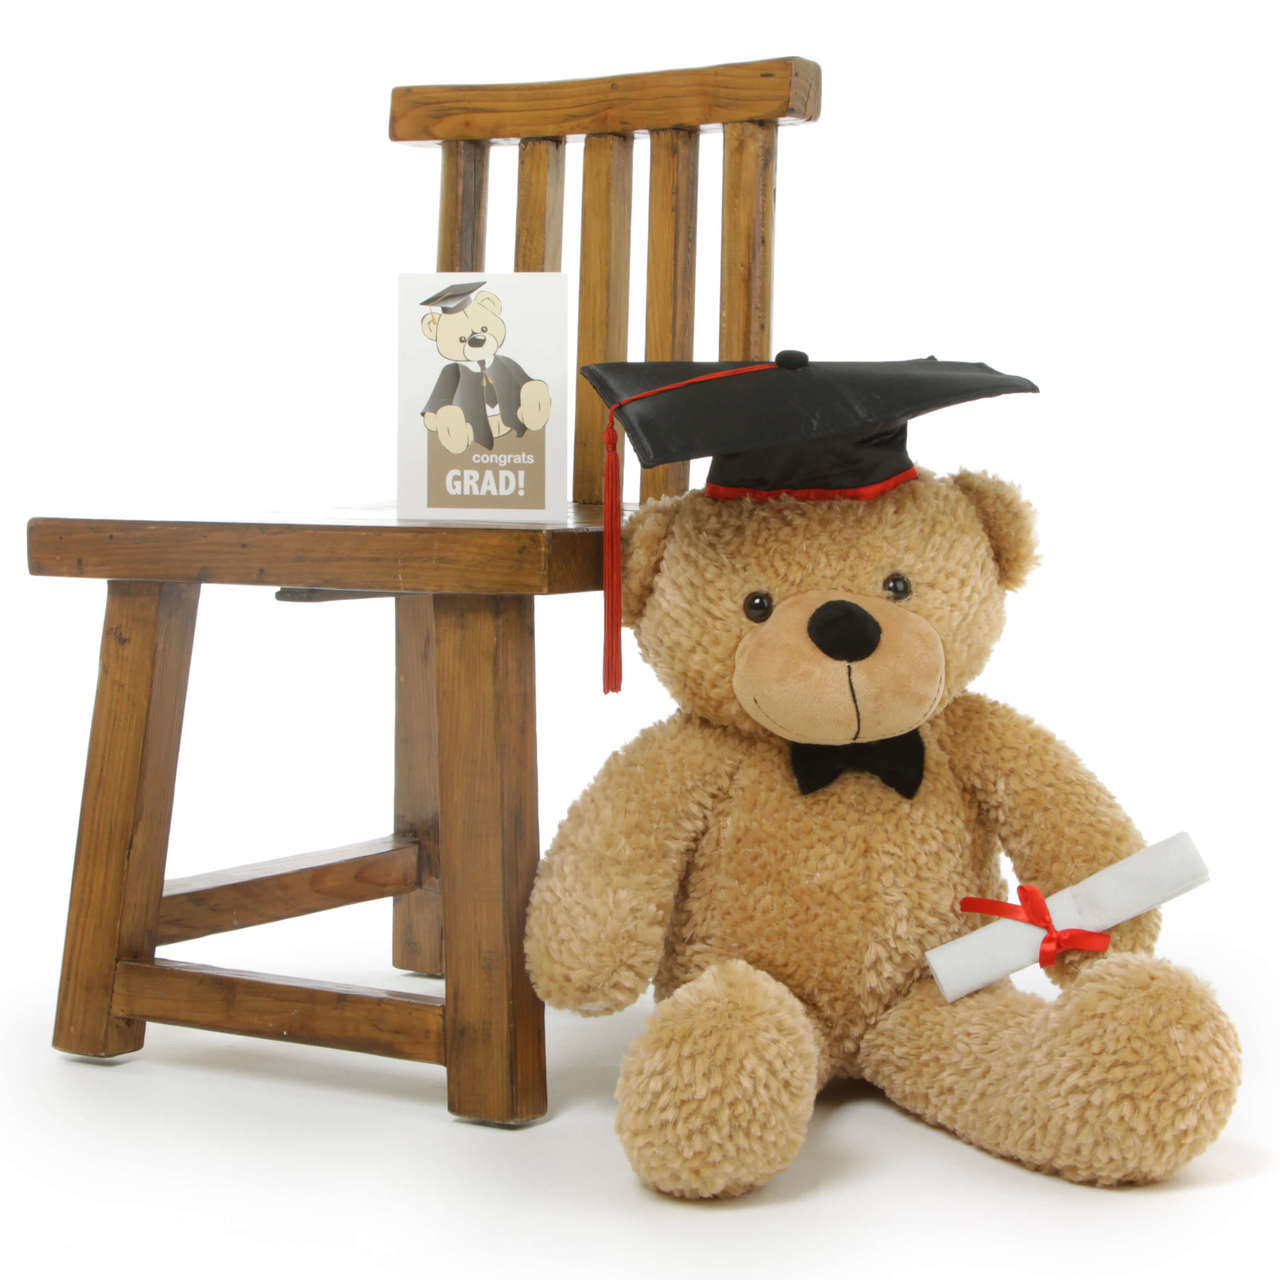 2ft Amber Graduation Teddy Bear with Cap and Diploma